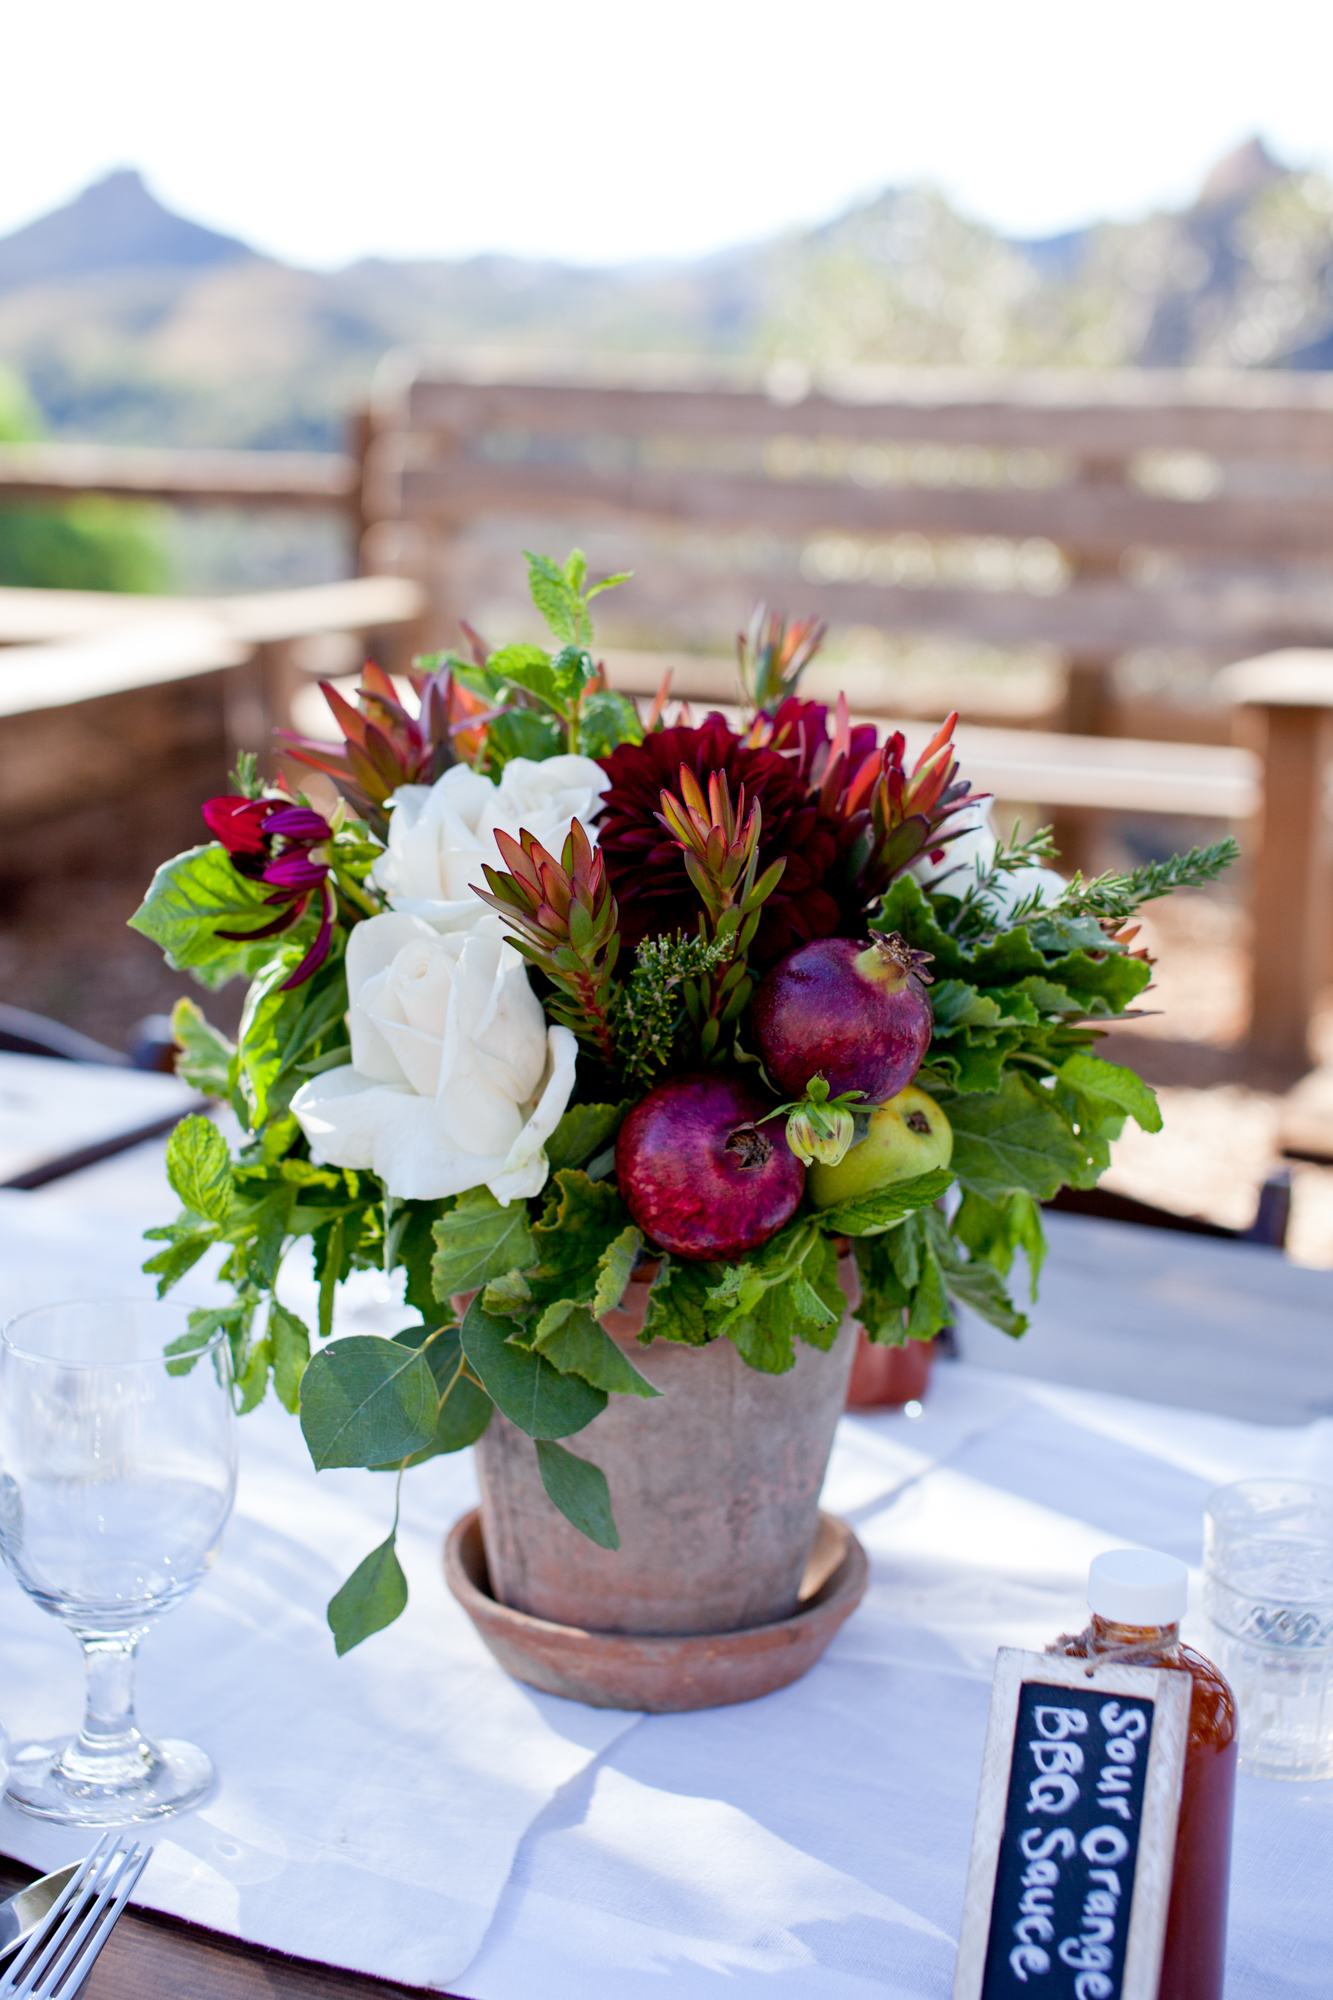 020_CarlyGaebe_SteadfastStudio_WeddingPhotography_Malibu_LosAngeles_LA_California_Winery_Hilltop_CieloFarms_TableDecor_Vineyard.jpg